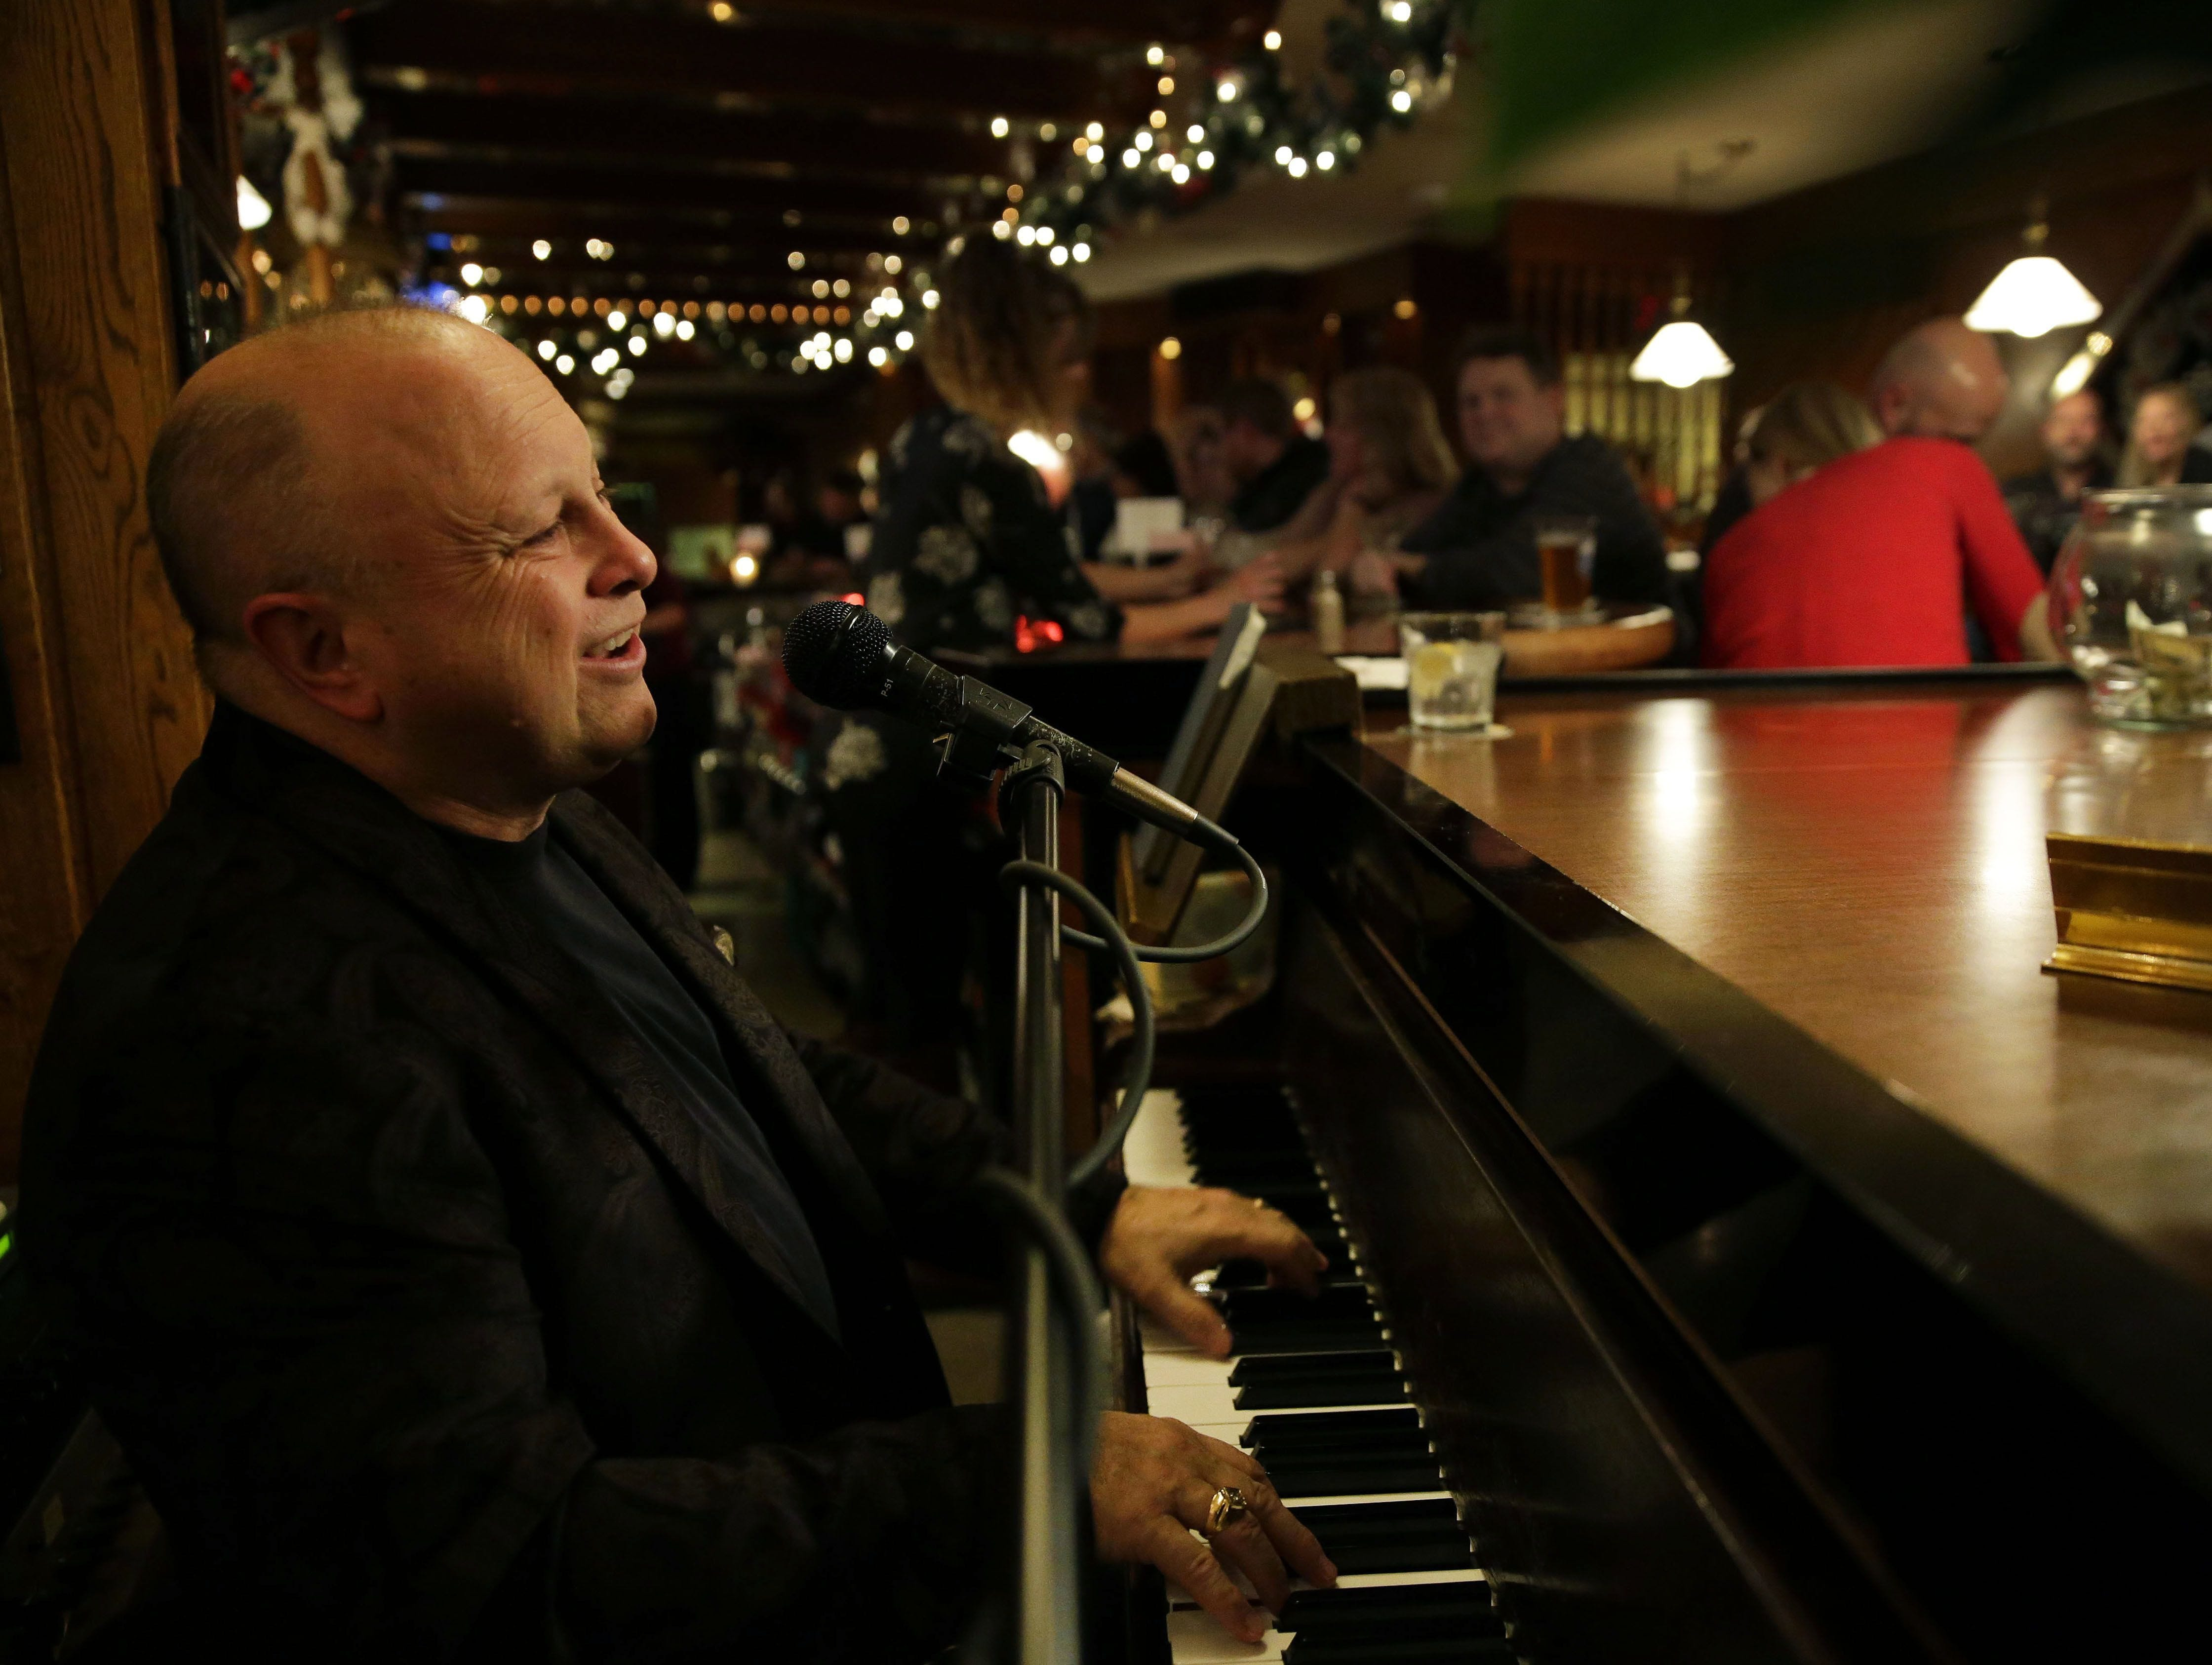 Bill Steinert of Oshkosh performs at George's Steak House in early December. Steinert has been playing at the Appleton restaurant for 35 years.